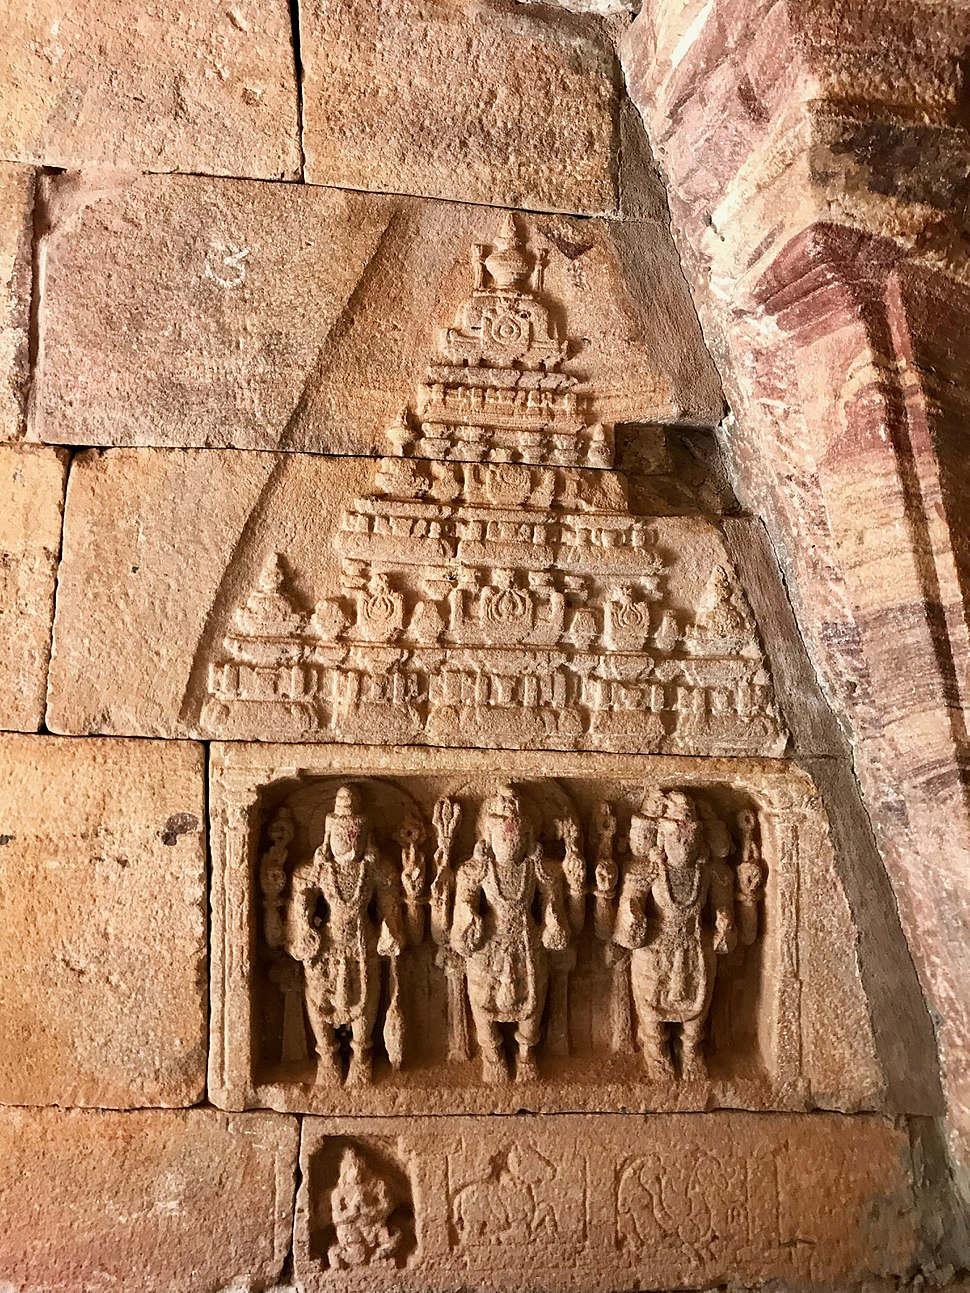 Vishnu, Shiva and Brahma in a small rock carving monument